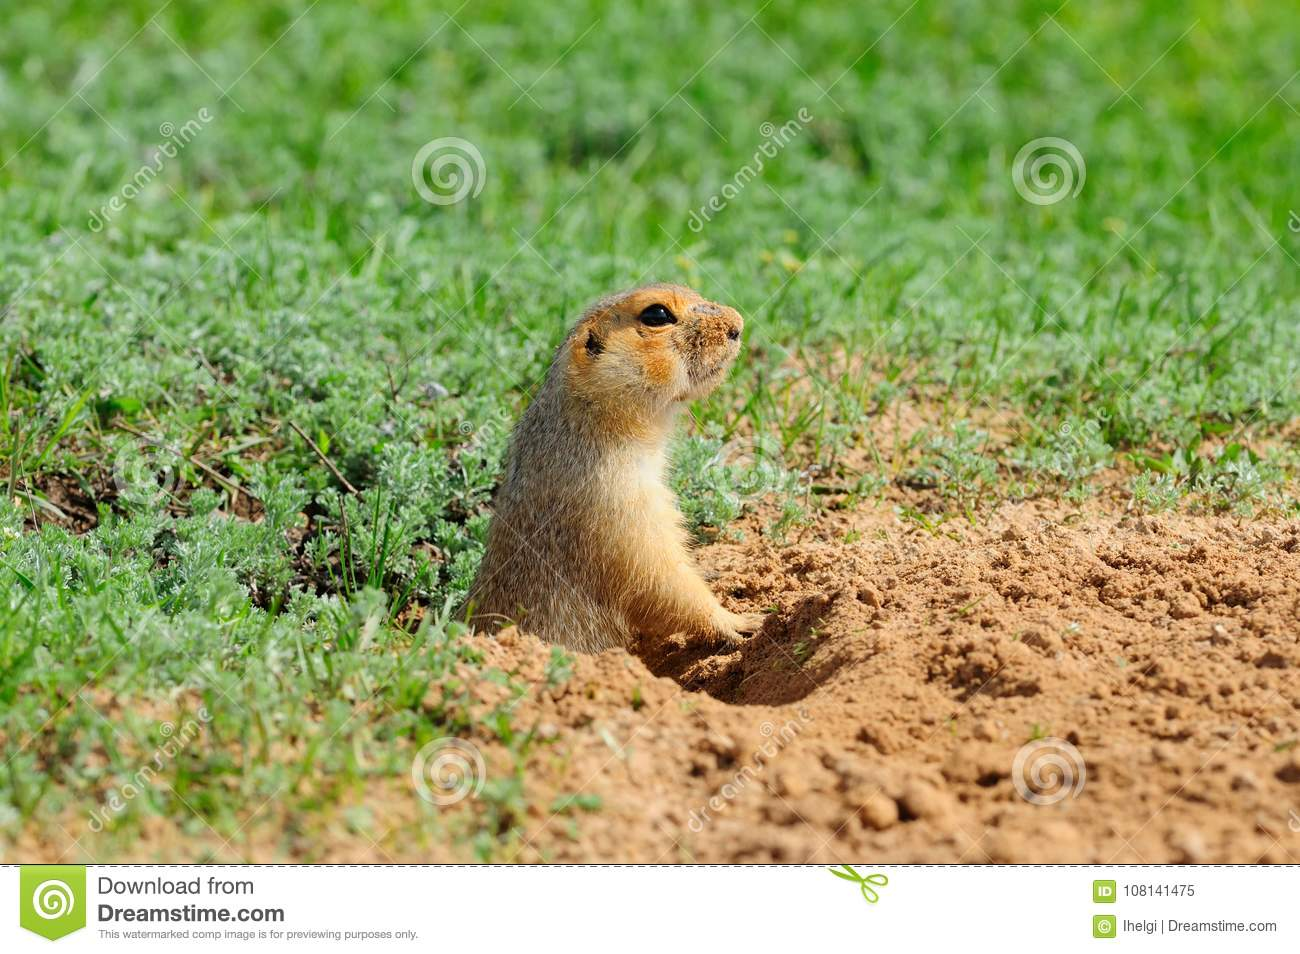 The yellow ground squirrel Spermophilus fulvus gets out of the hole.